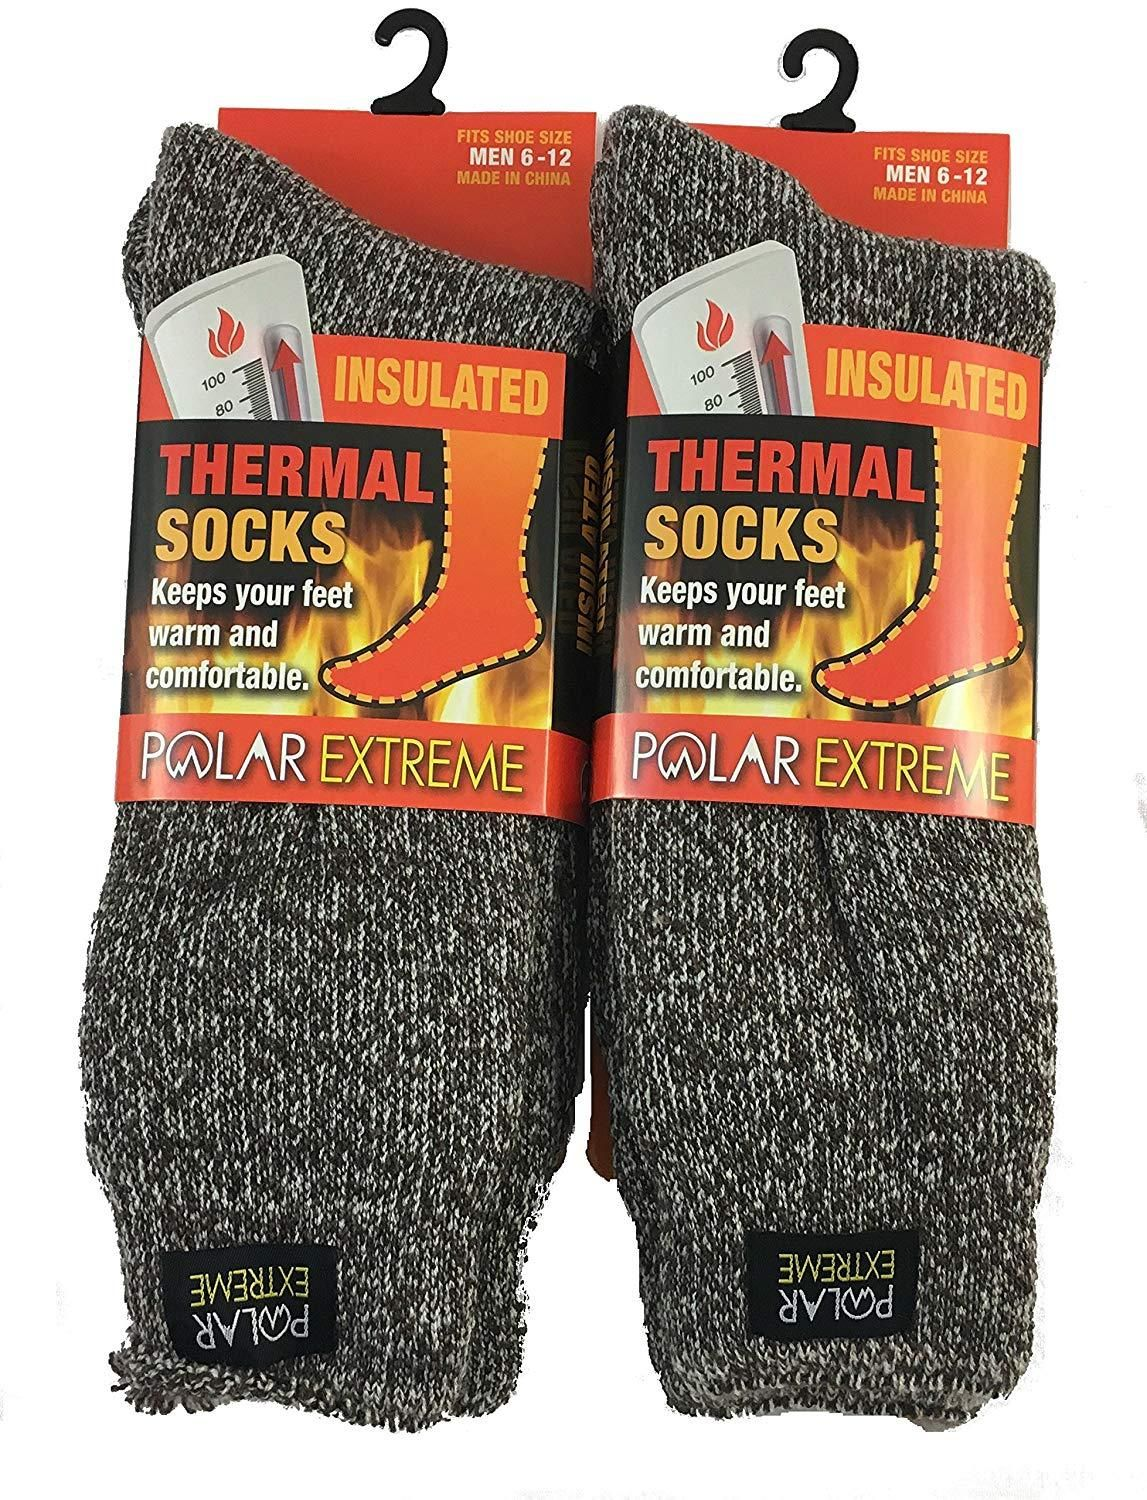 27d43a5c2 Polar Extreme Men's Thermal Sock Pack of 2 in 2019 | Products ...